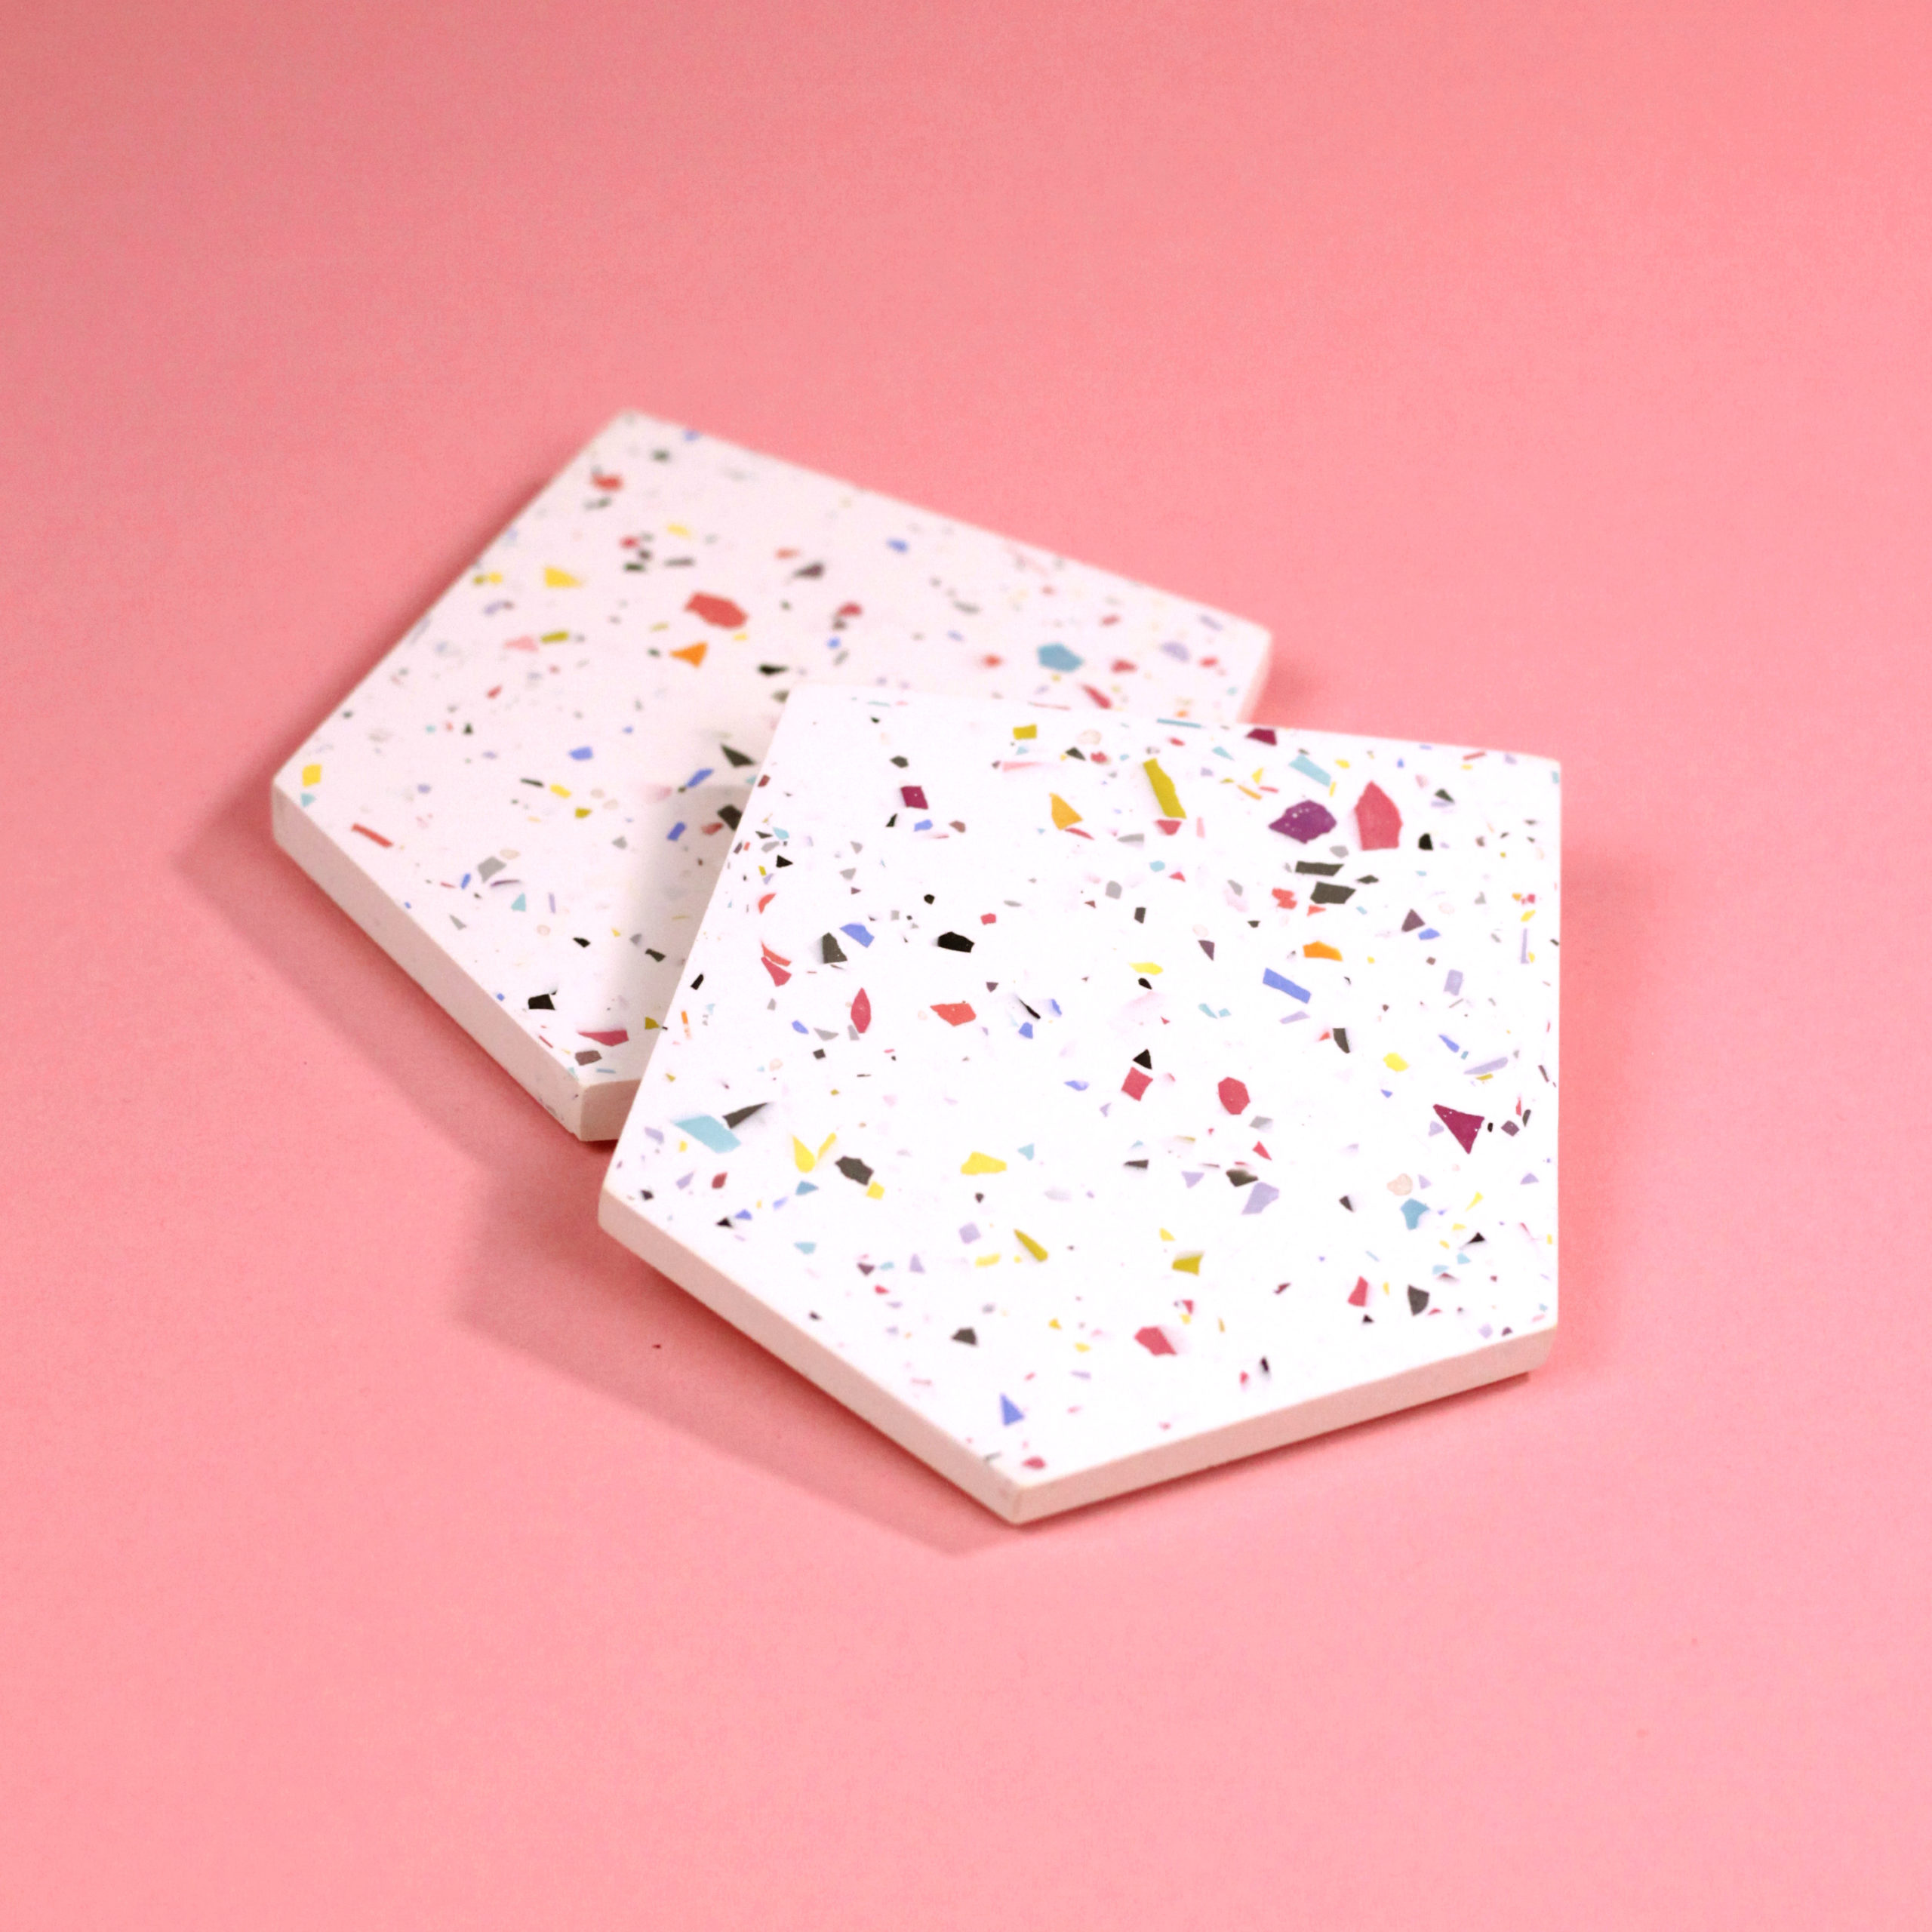 SET OF TWO TERRAZZO COASTERS WHITE FRAUKLARER